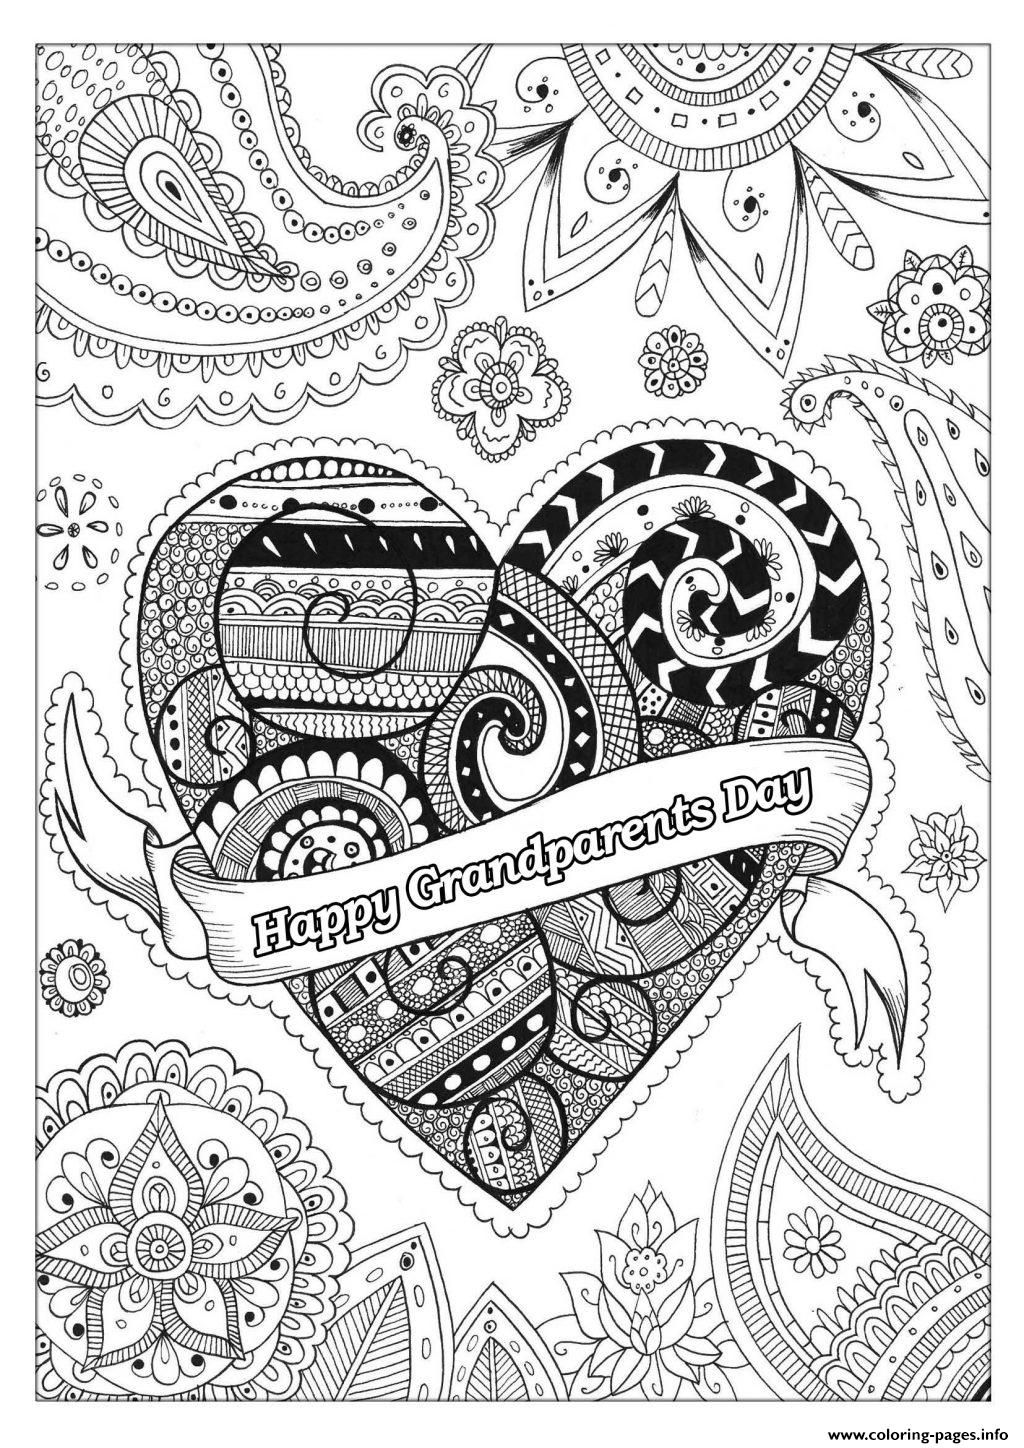 - Grandparents Day Incredible Adult Coloring Pages Printable